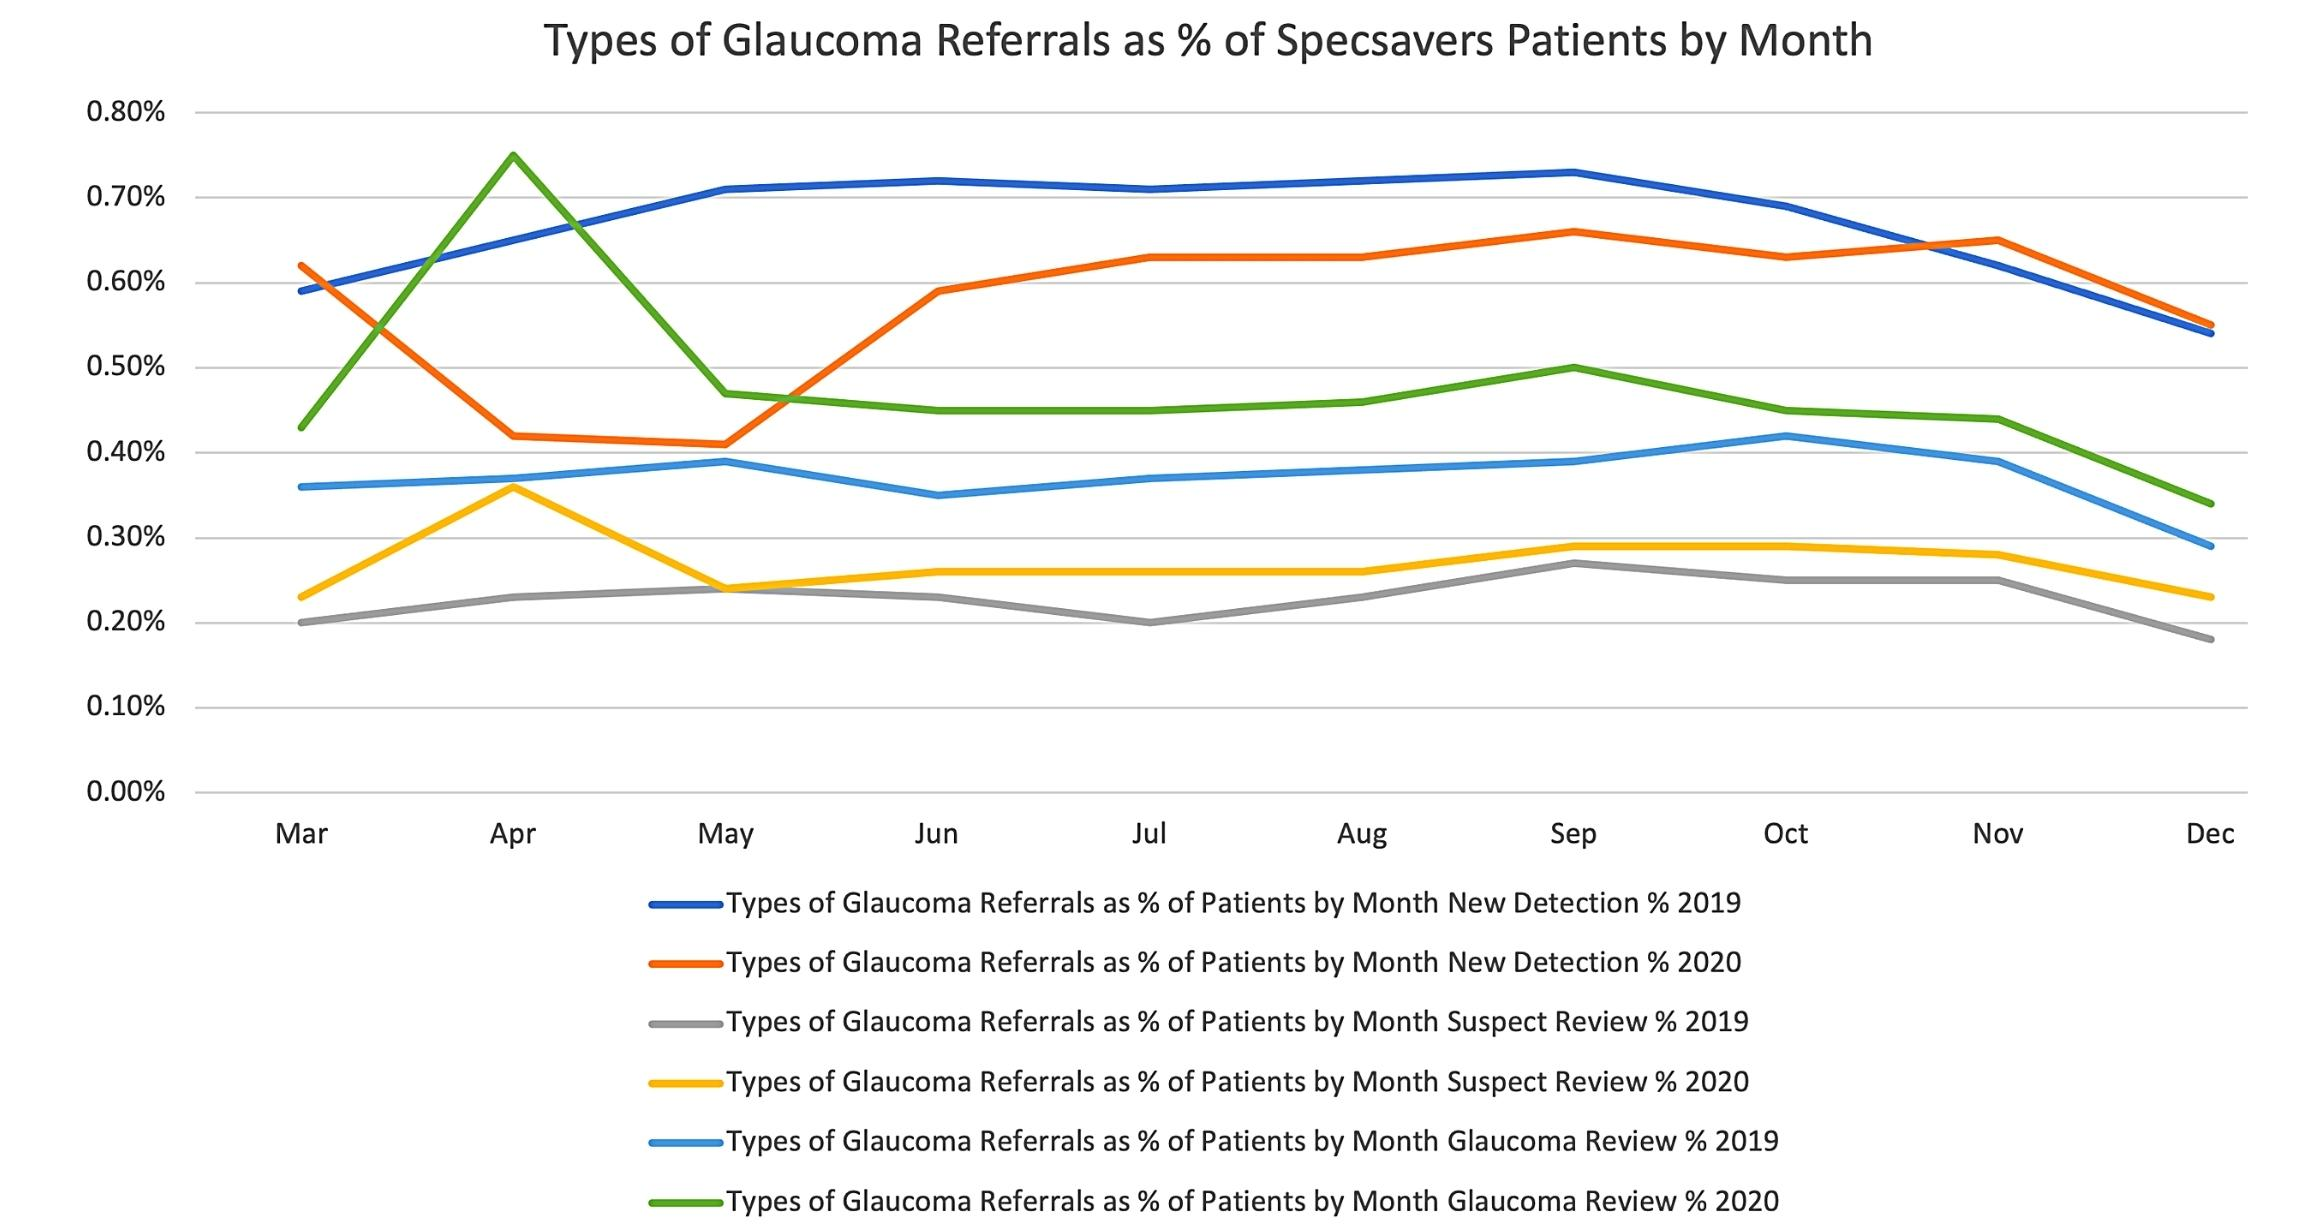 Figure 2. Types of glaucoma referrals as a percentage of patients by month.